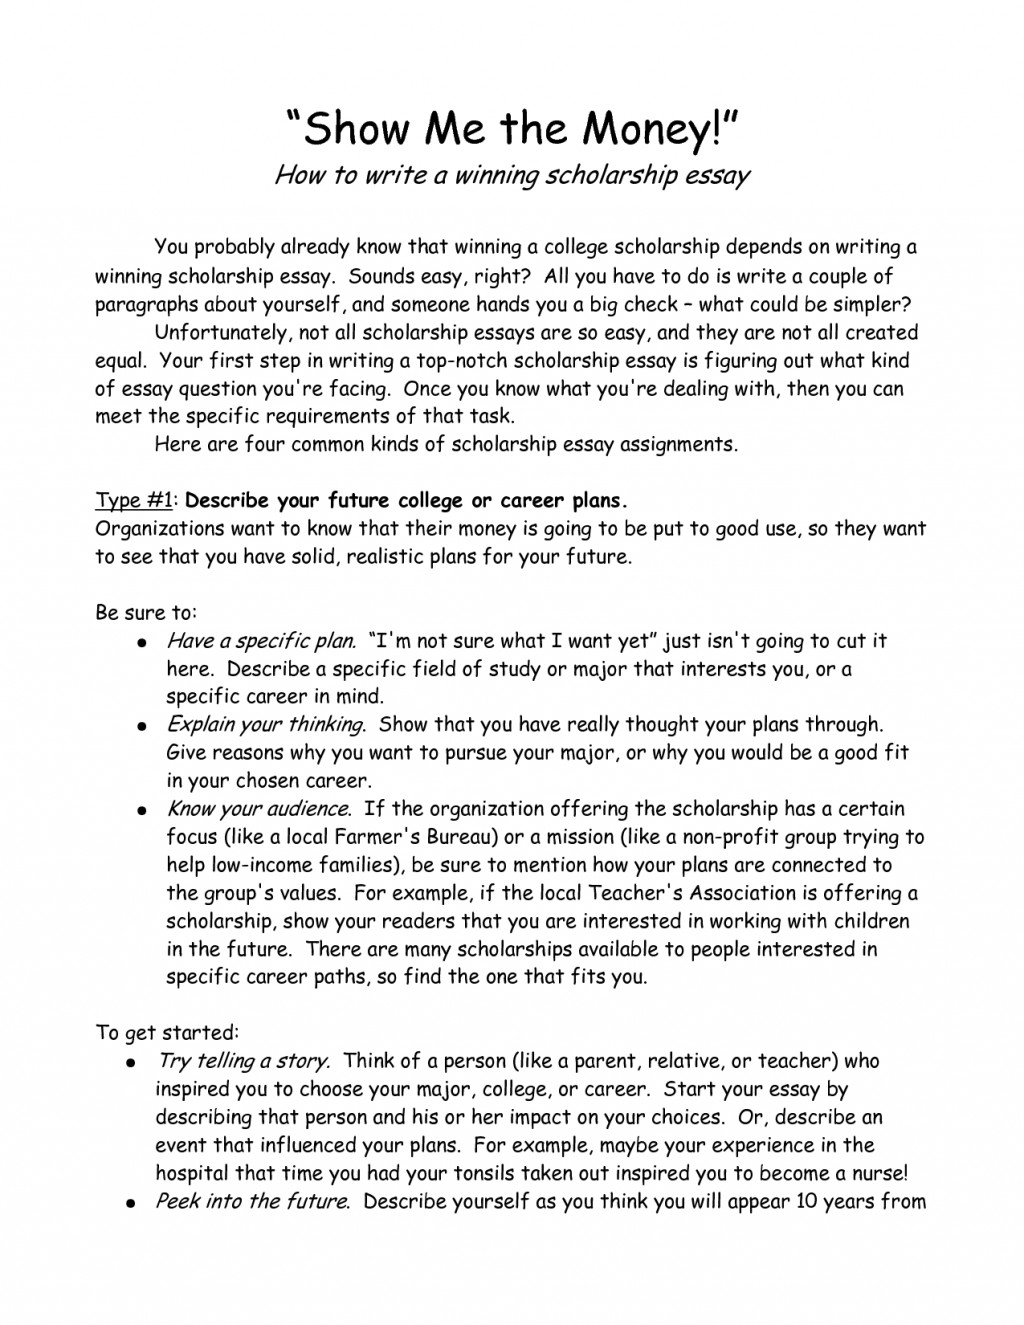 002 Writing Scholarship Essay Excellent A Good Keys To Winning Large